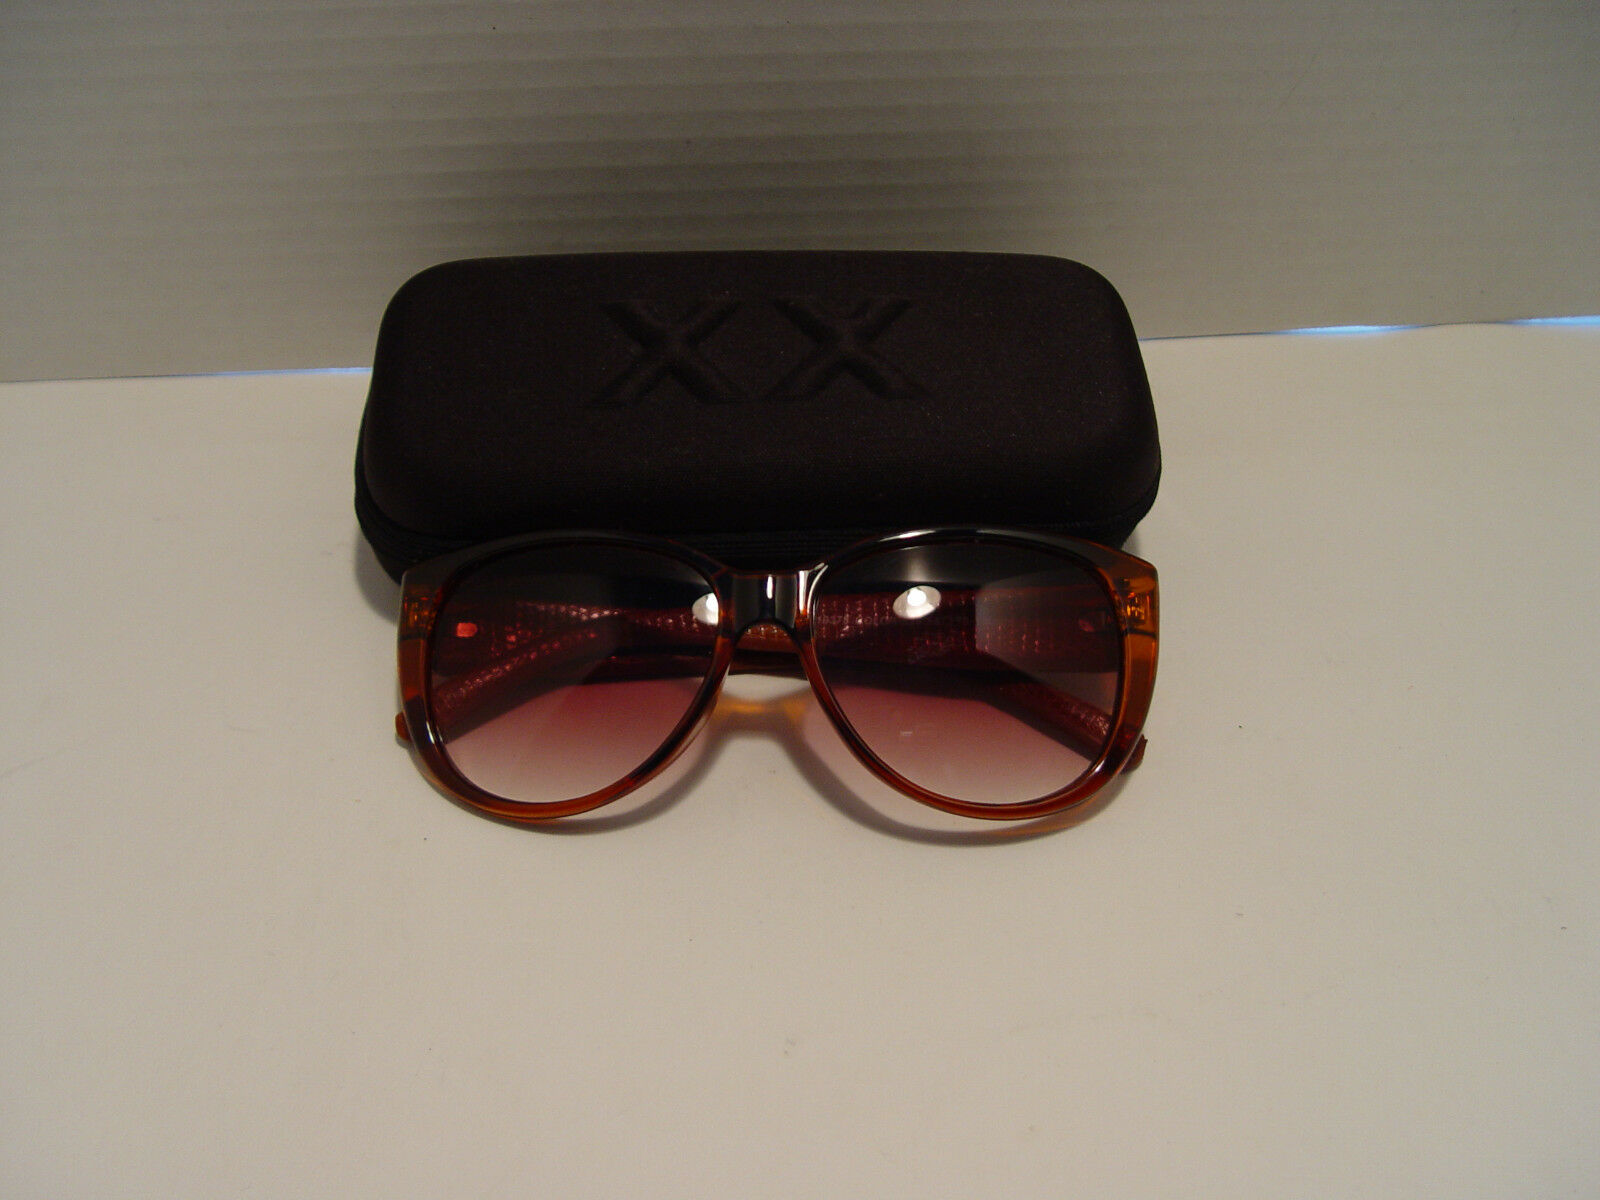 New Esprit Womens Modified Brown Leather  Square Plastic Sunglass ET 19378 528  limited edition